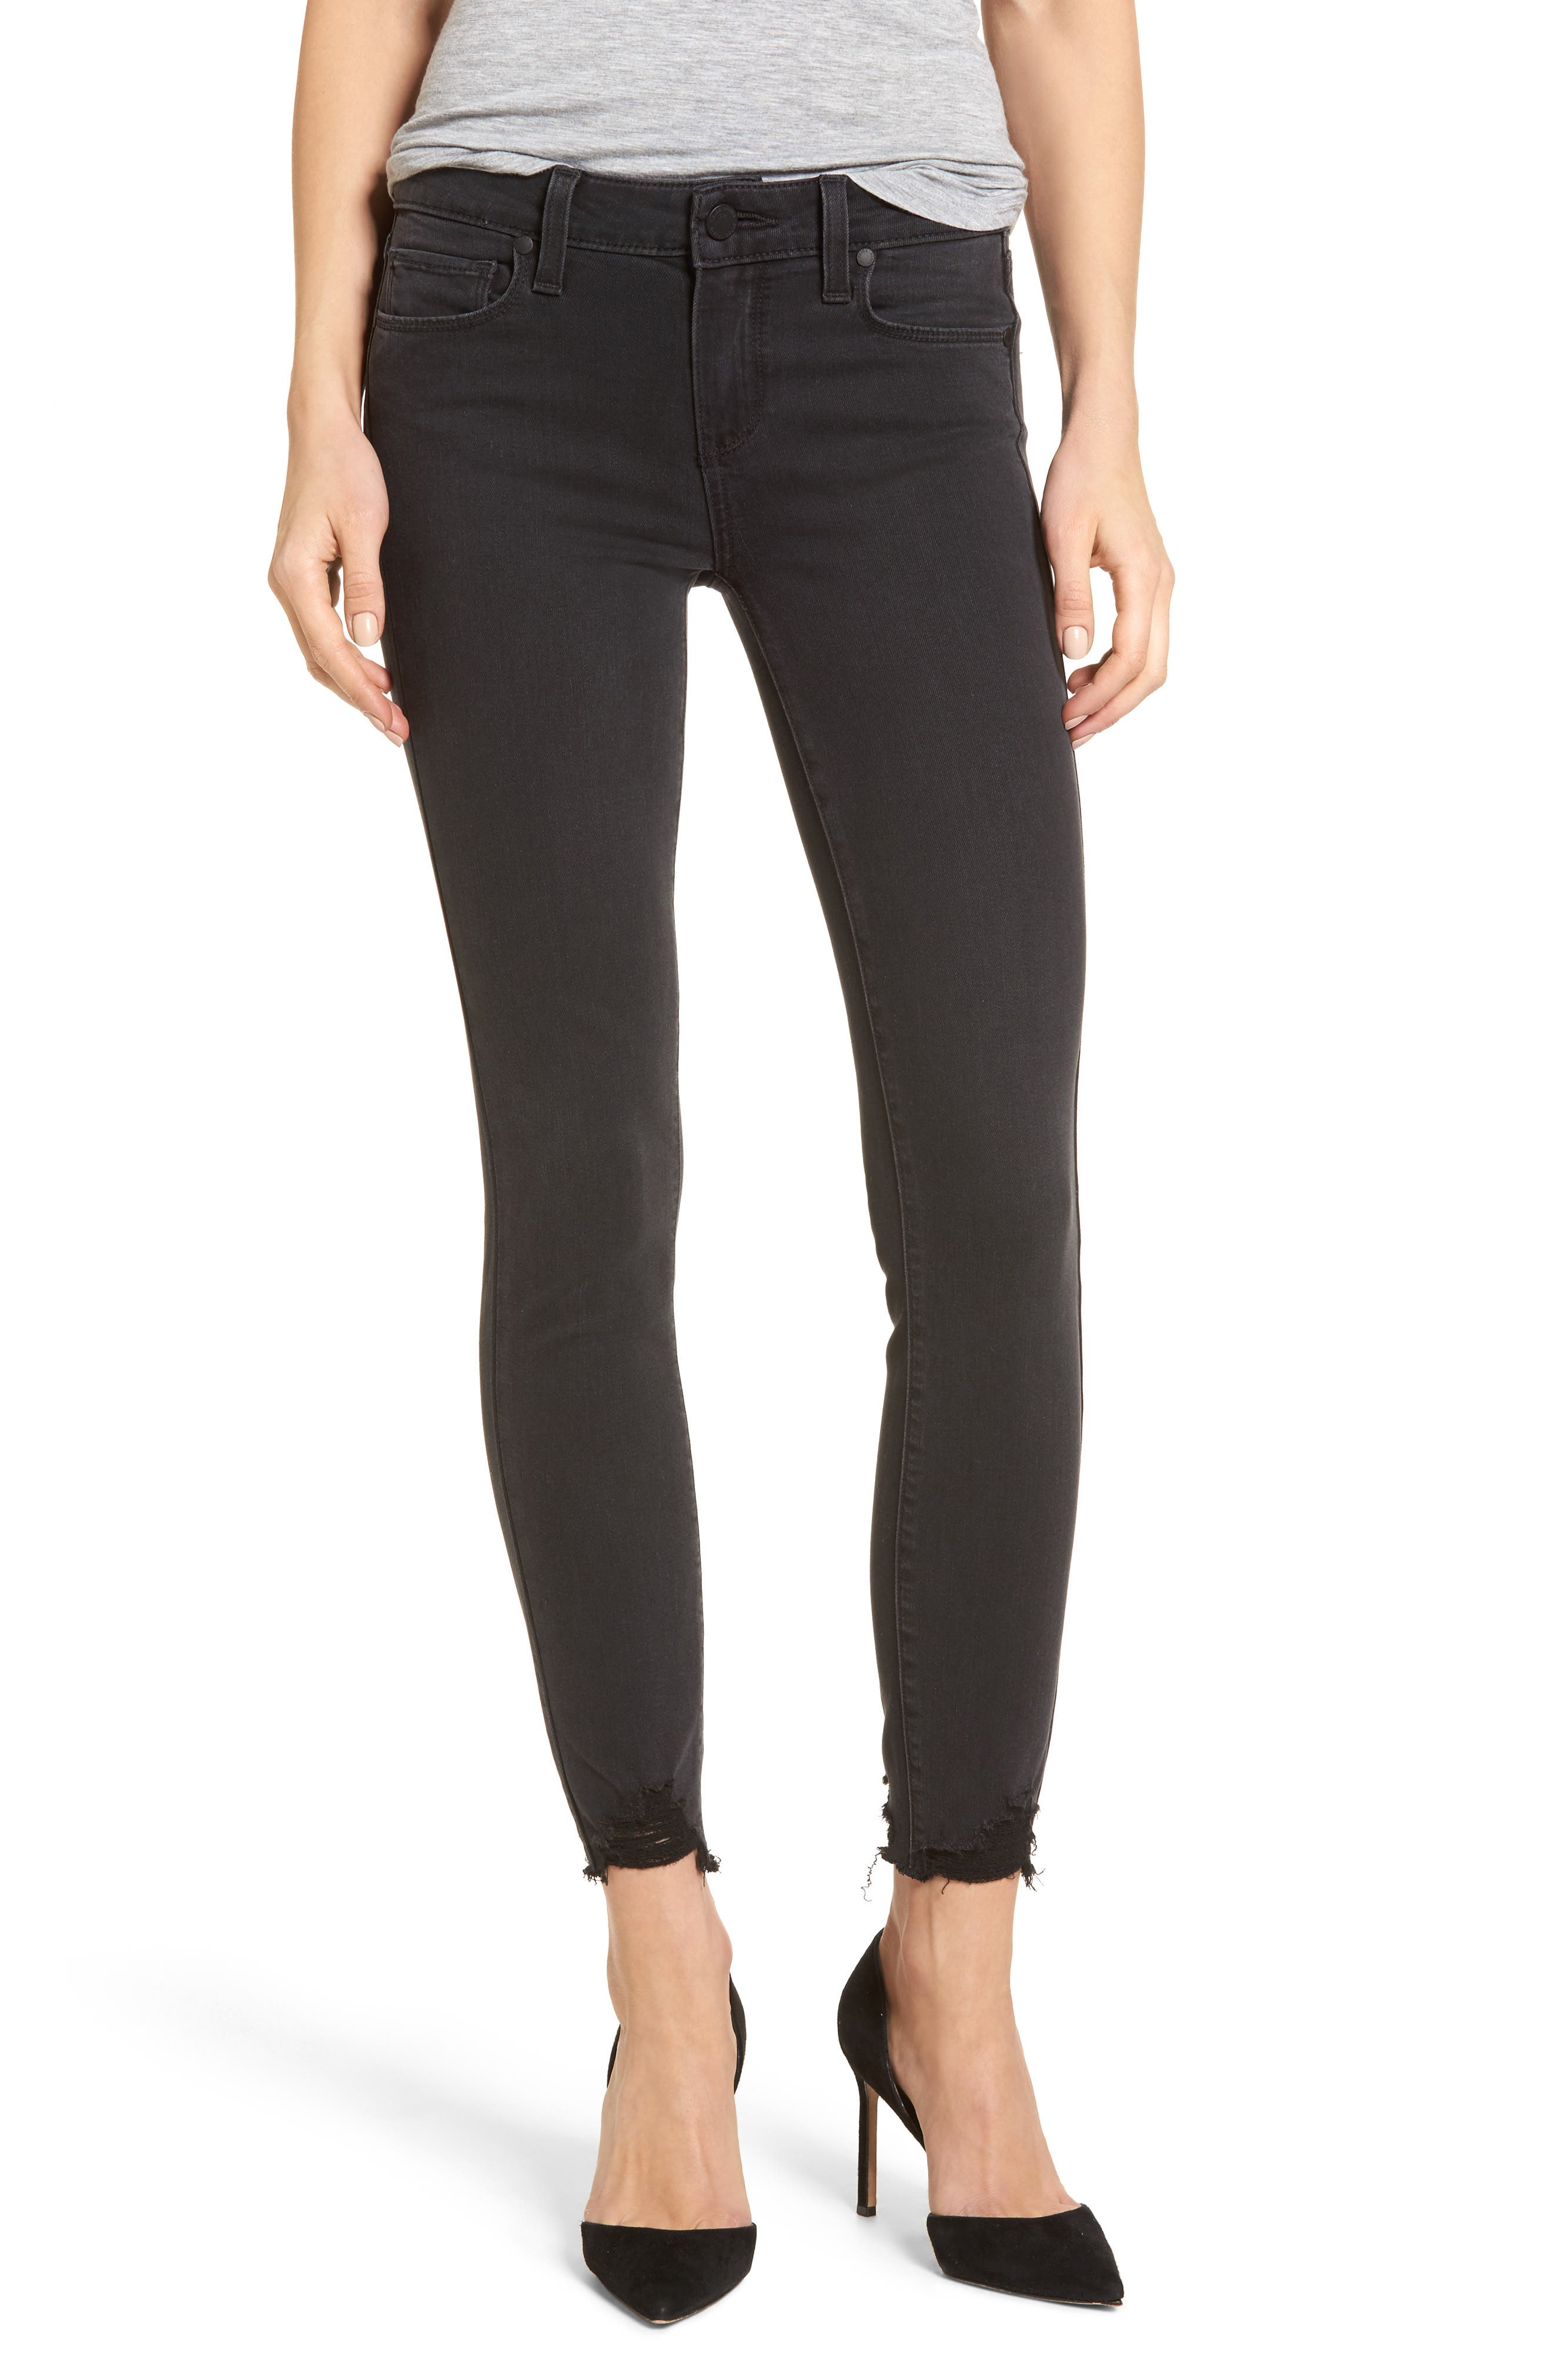 PAIGE Transcend - Verdugo Ankle Skinny Jeans, Main, color, 001